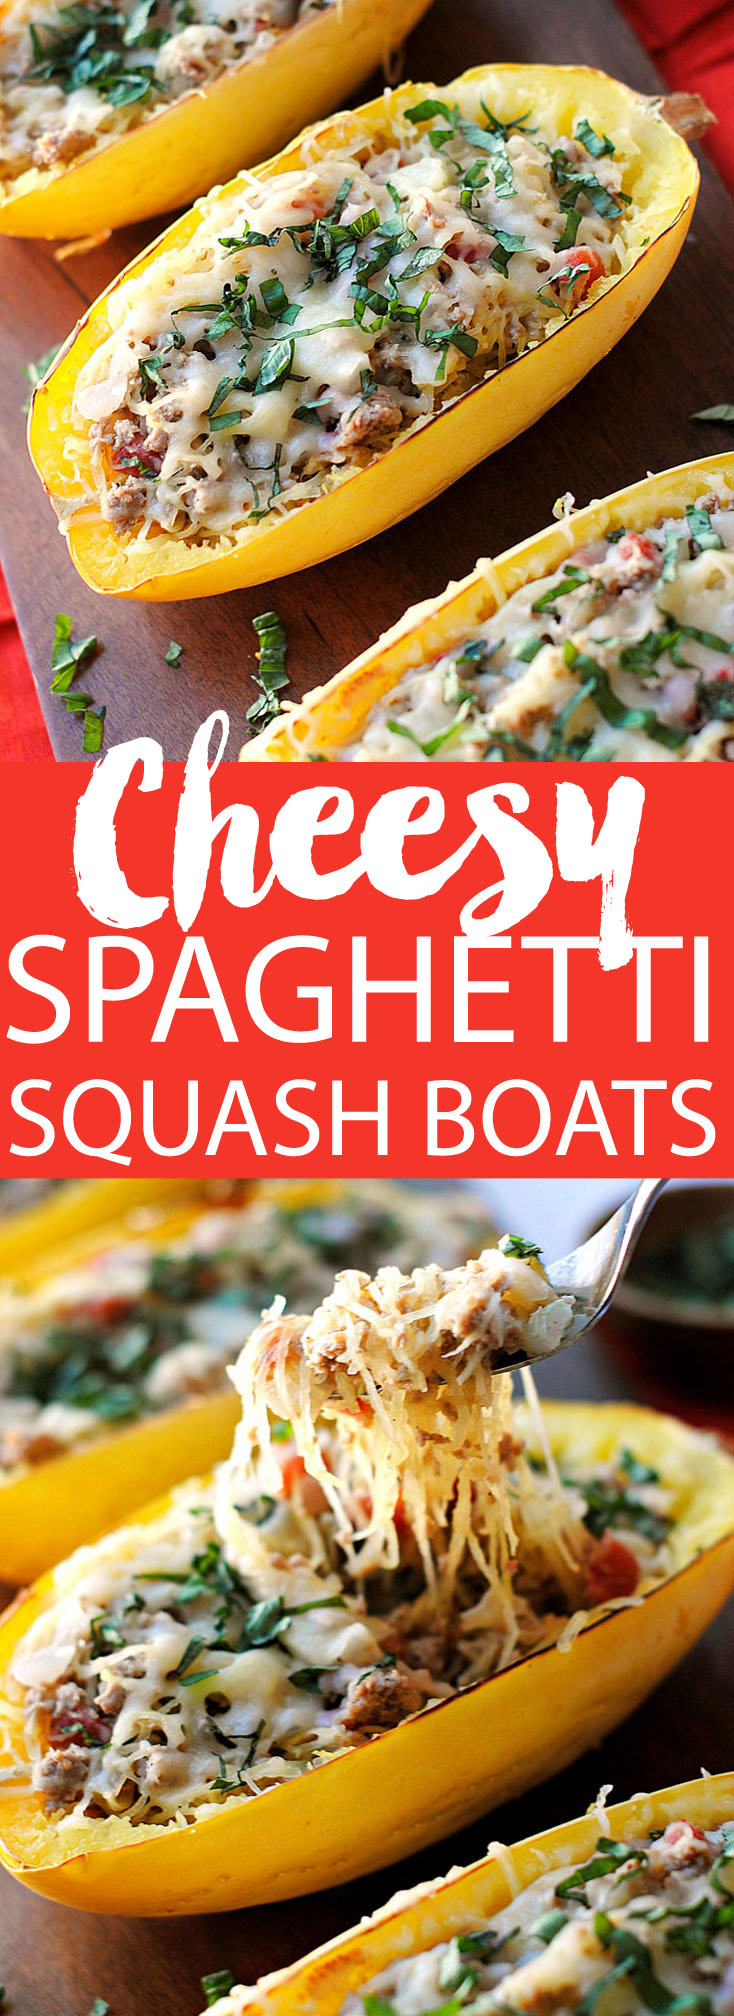 Cheese Spaghetti Squash Boats with Spicy Sausage, a family favorite! | Eat Yourself Skinny